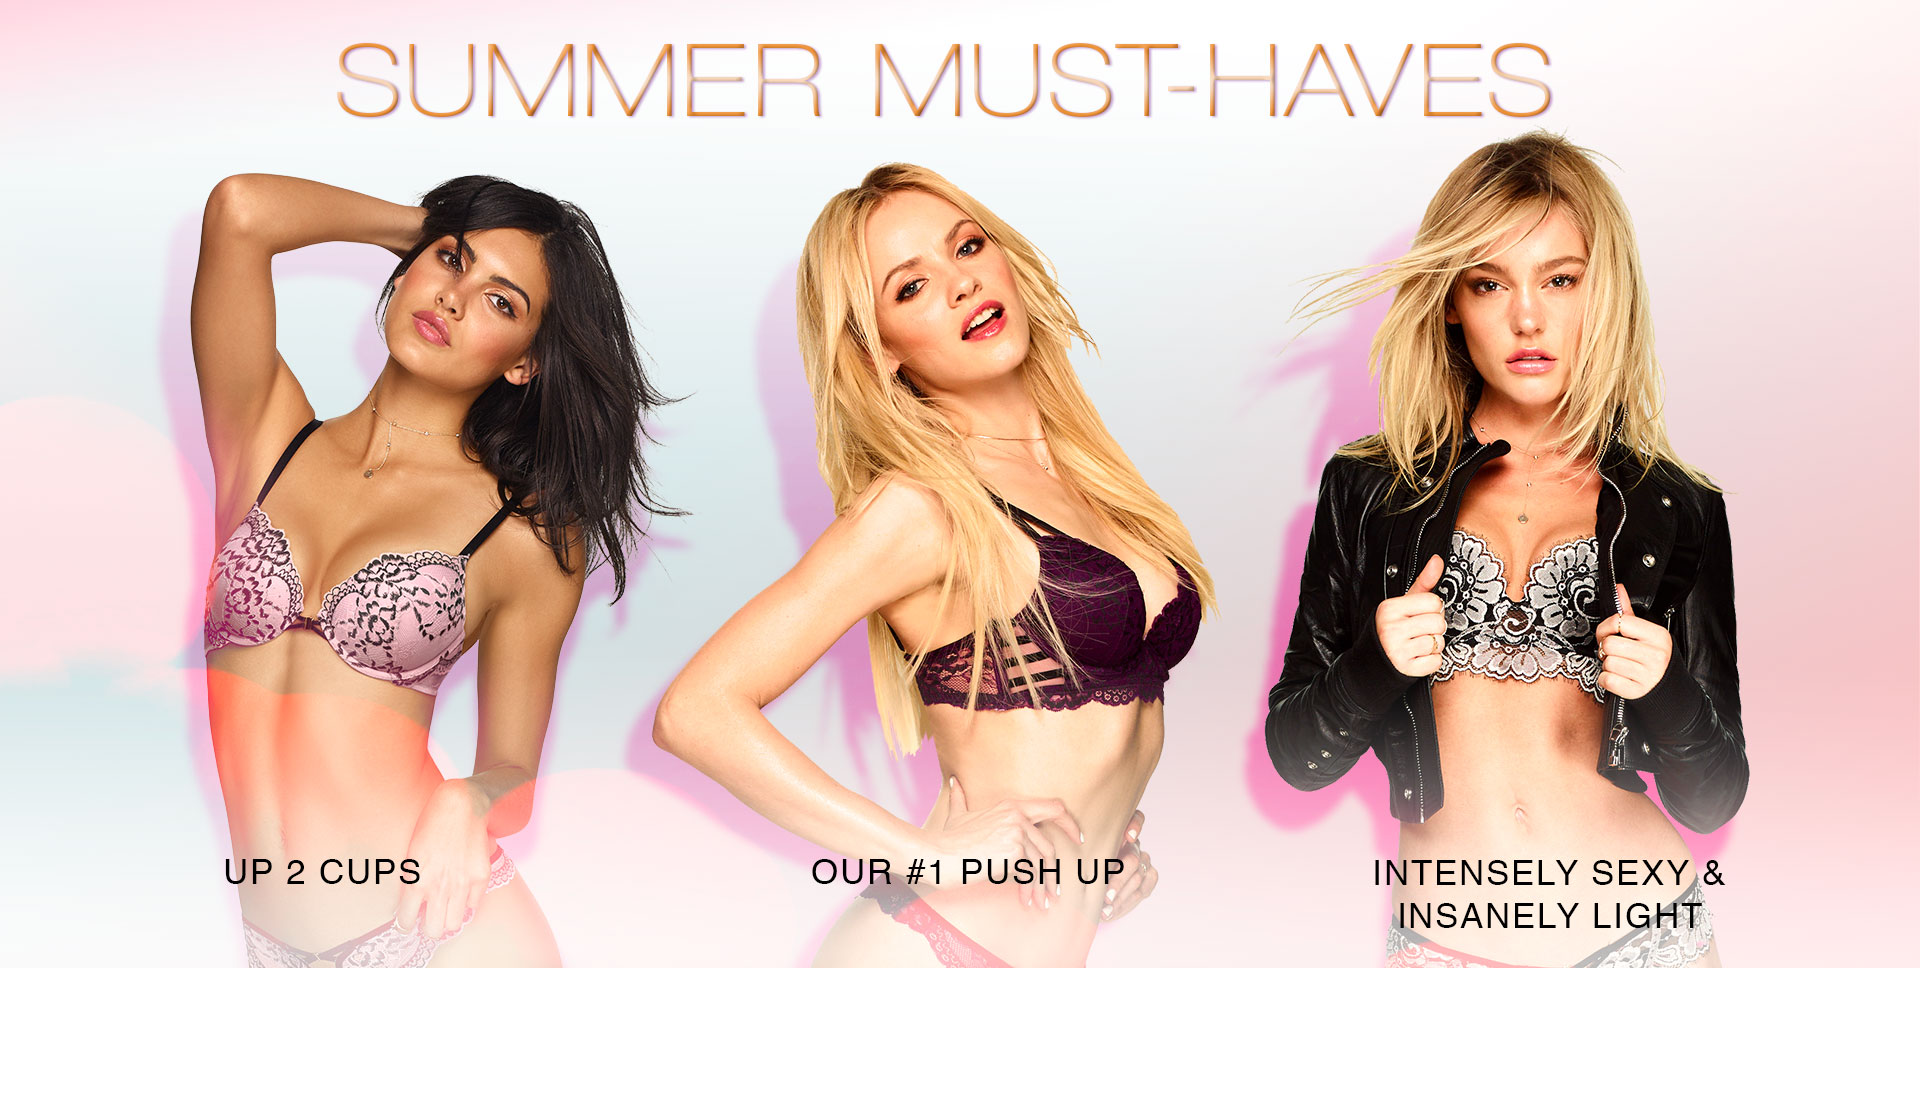 Summer must-haves. Up2 cups. Our #1 push up. Intensely sexy & insanely light.